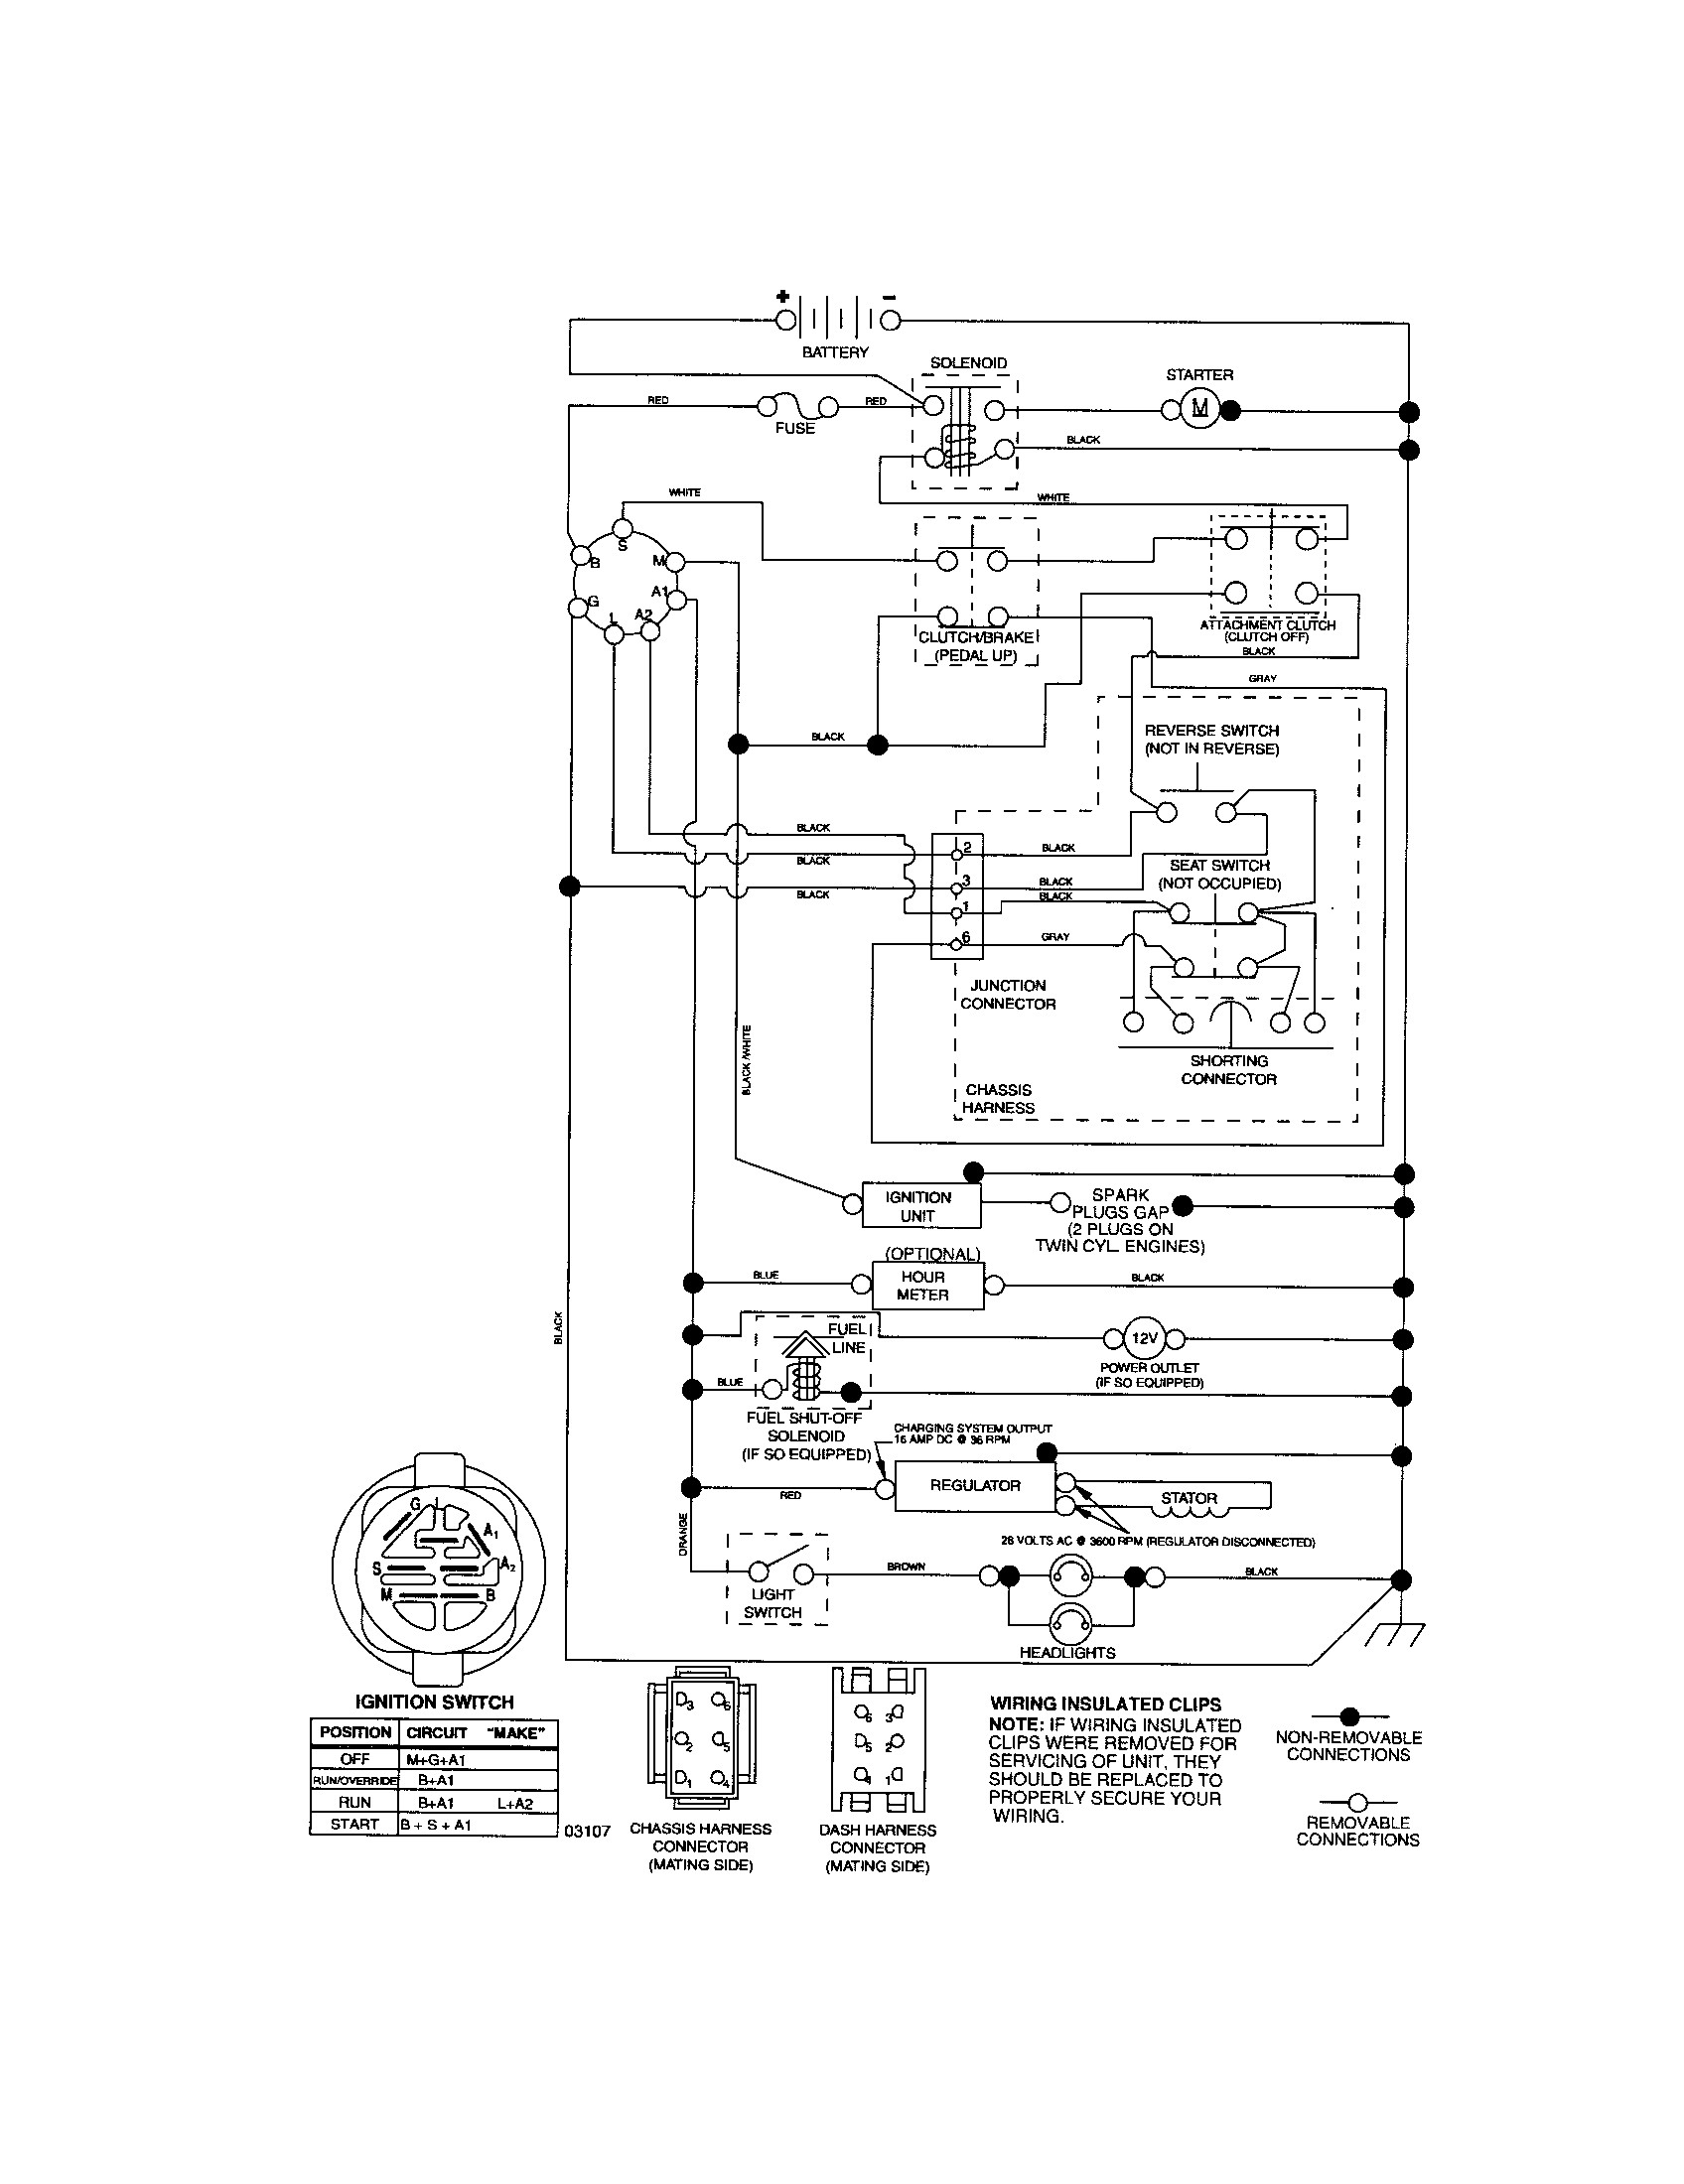 Century Battery Charger Wiring Diagram Diehard Auto Electrical Related With